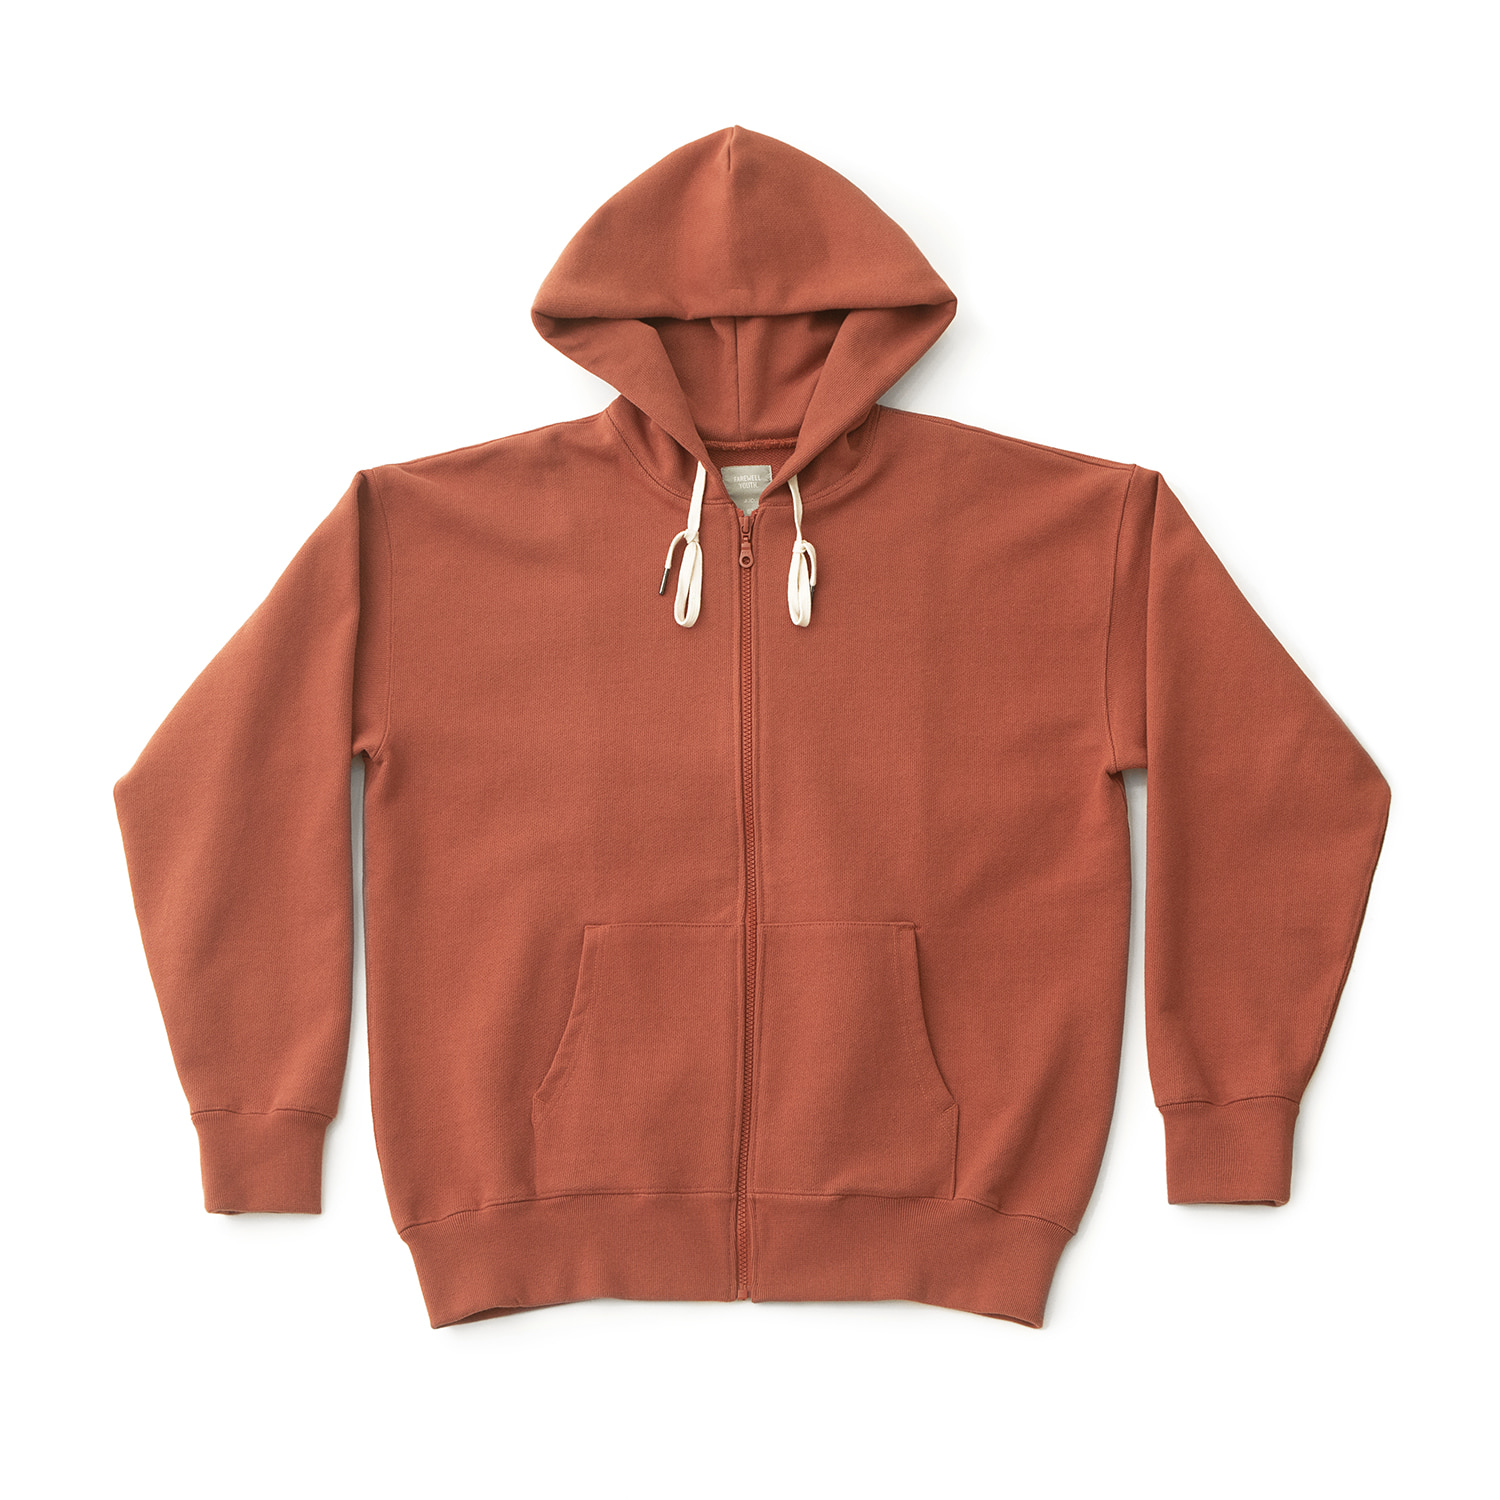 Upright Hood Jacket (Sunset)